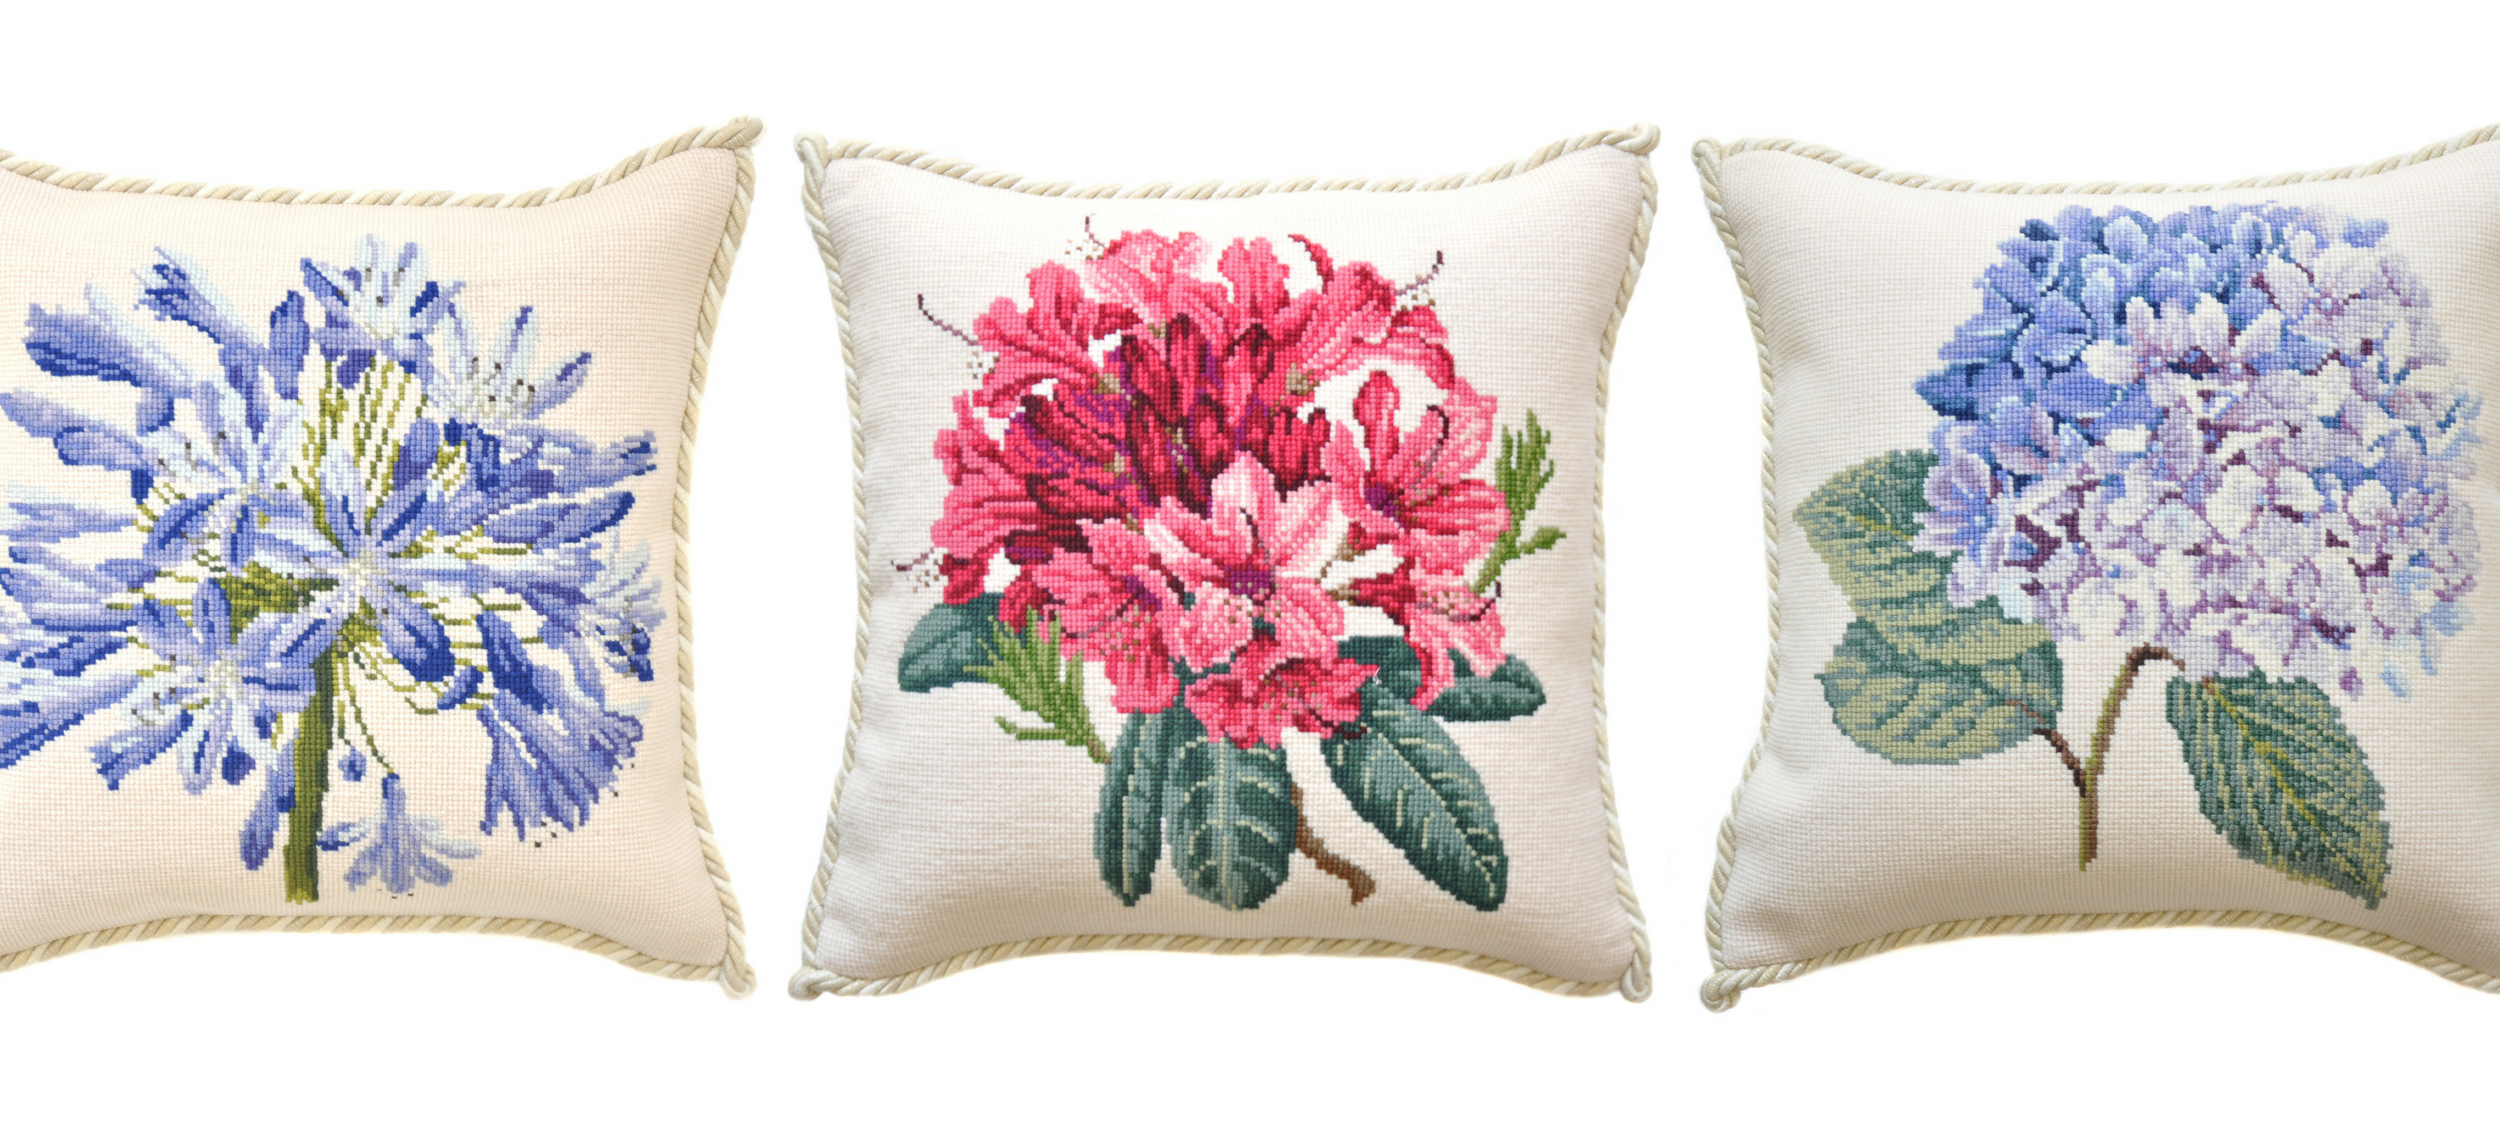 Floral blooms needlepoint pillows